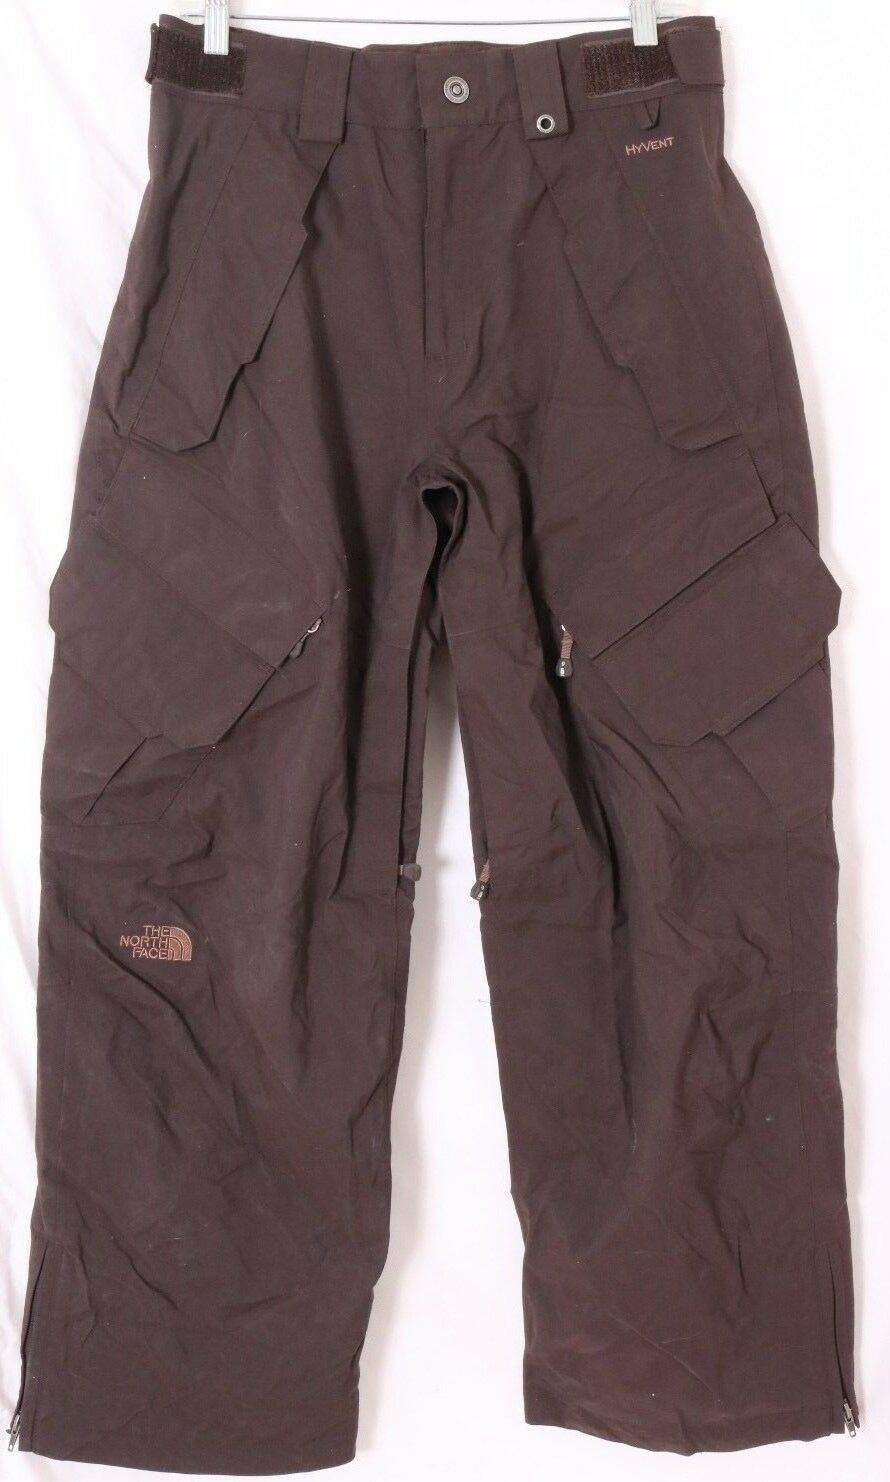 The North Face Cryptic Hyvent RECCO System Brown Snowboarding Ski Pants Men's S